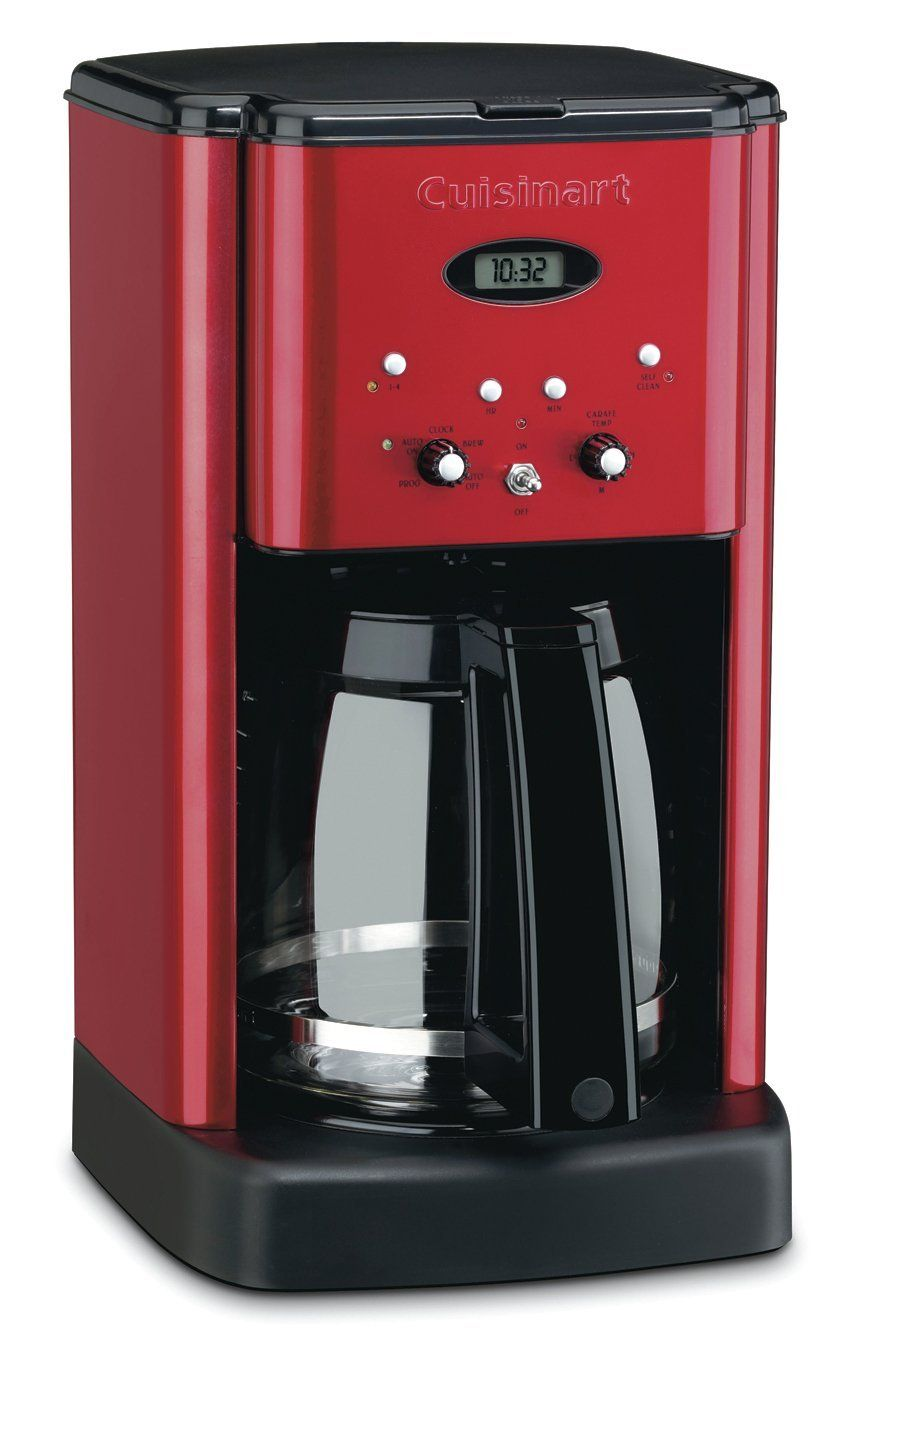 Red+Coffee+Pot++Cuisinart+DCC1200+Brew+Central+12Cup